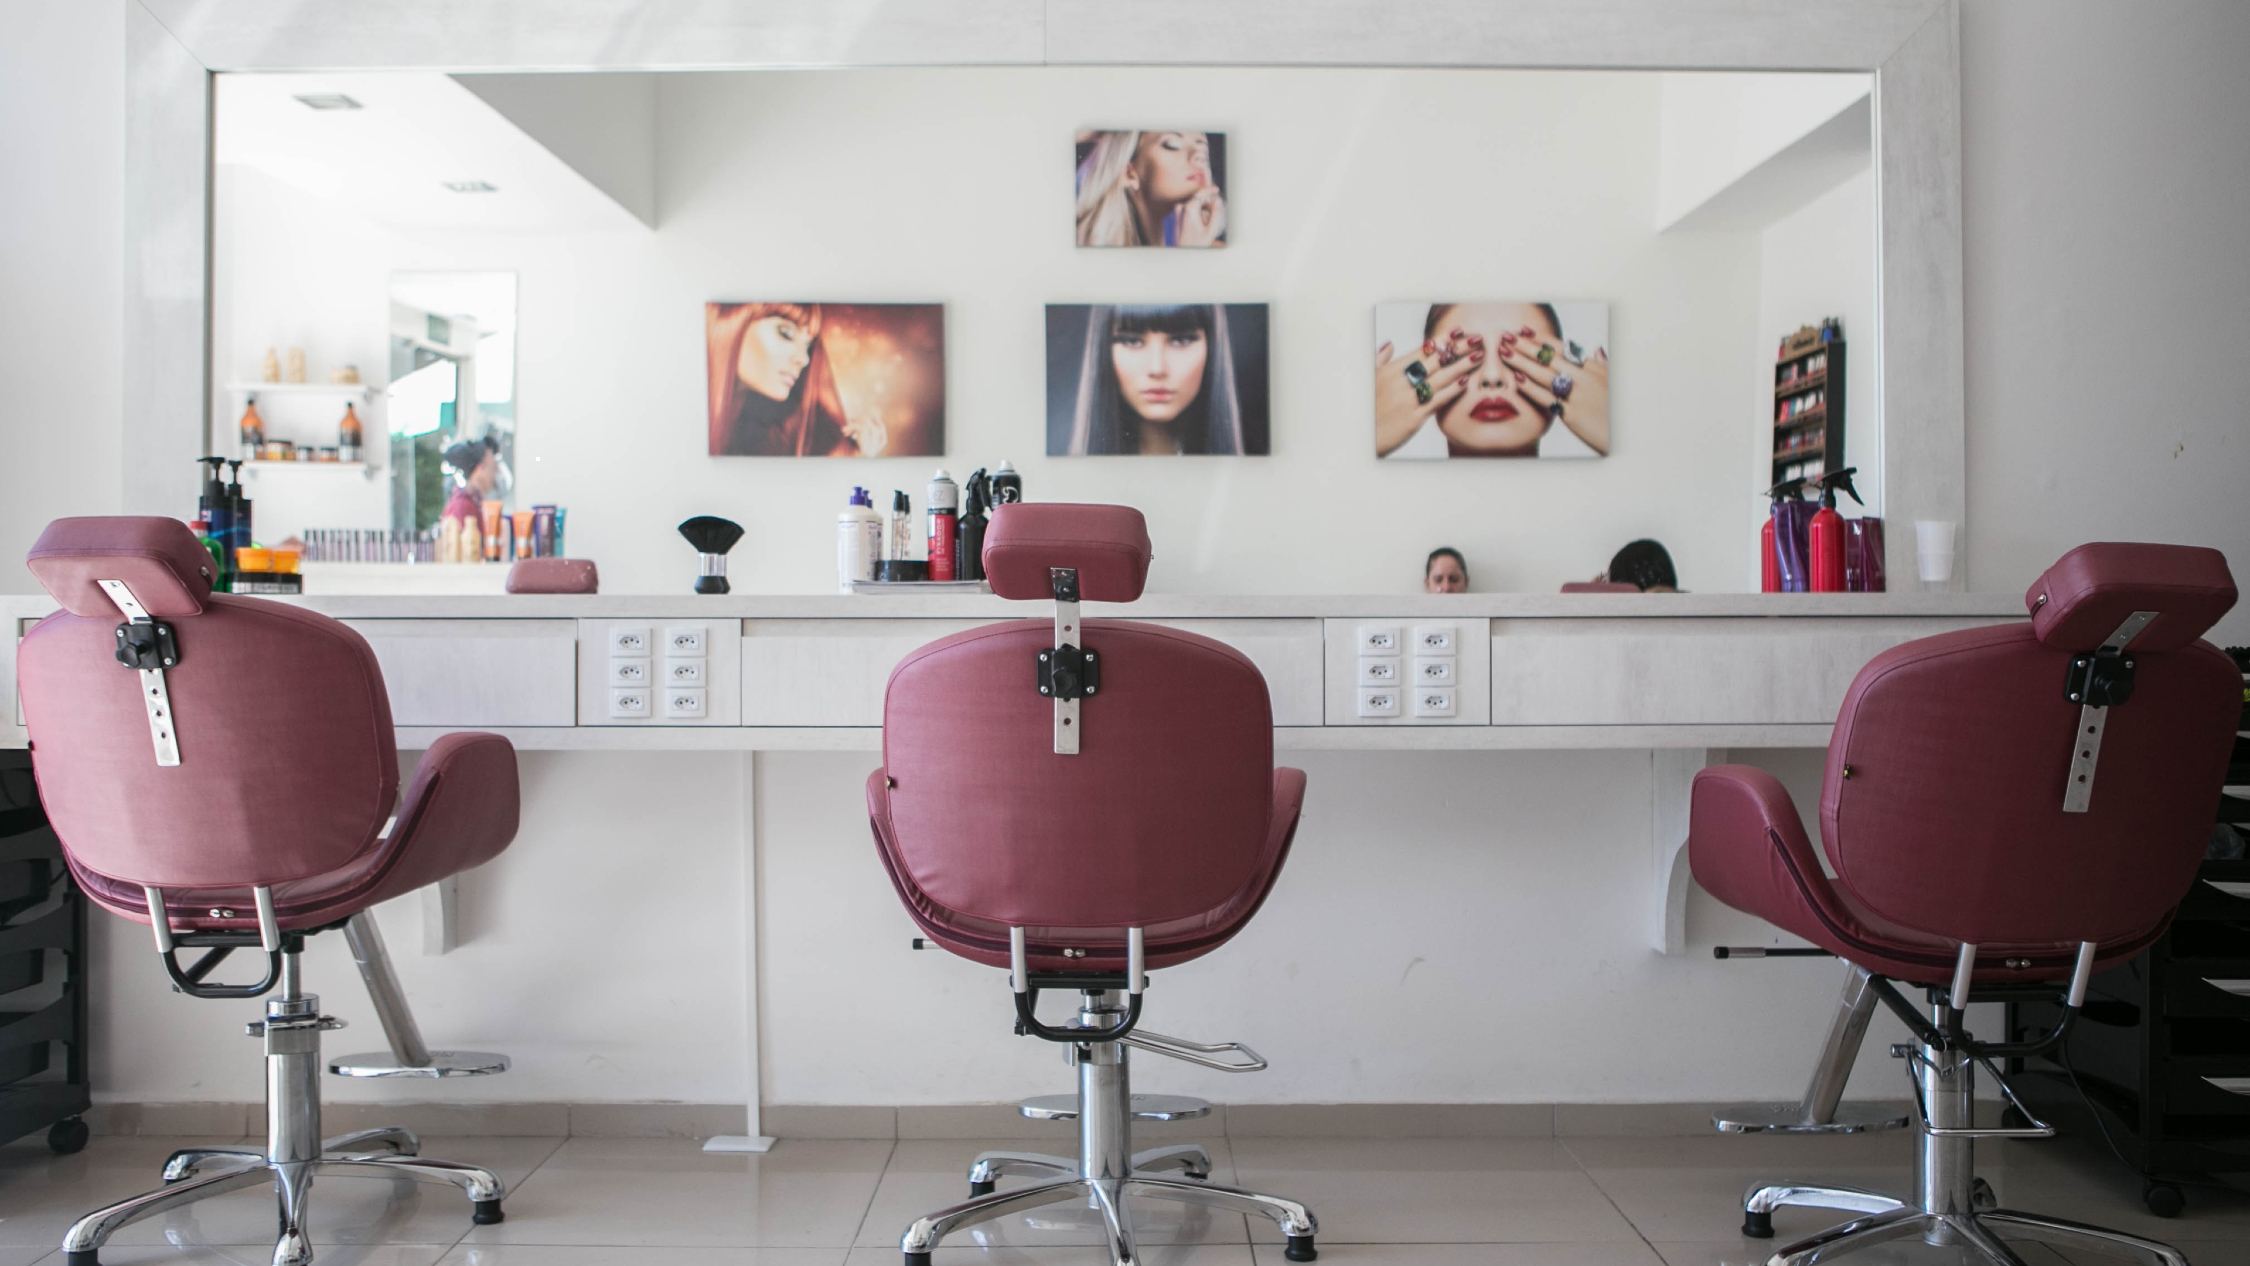 Beauty salons in NSW are given the green light to reopen on June 1